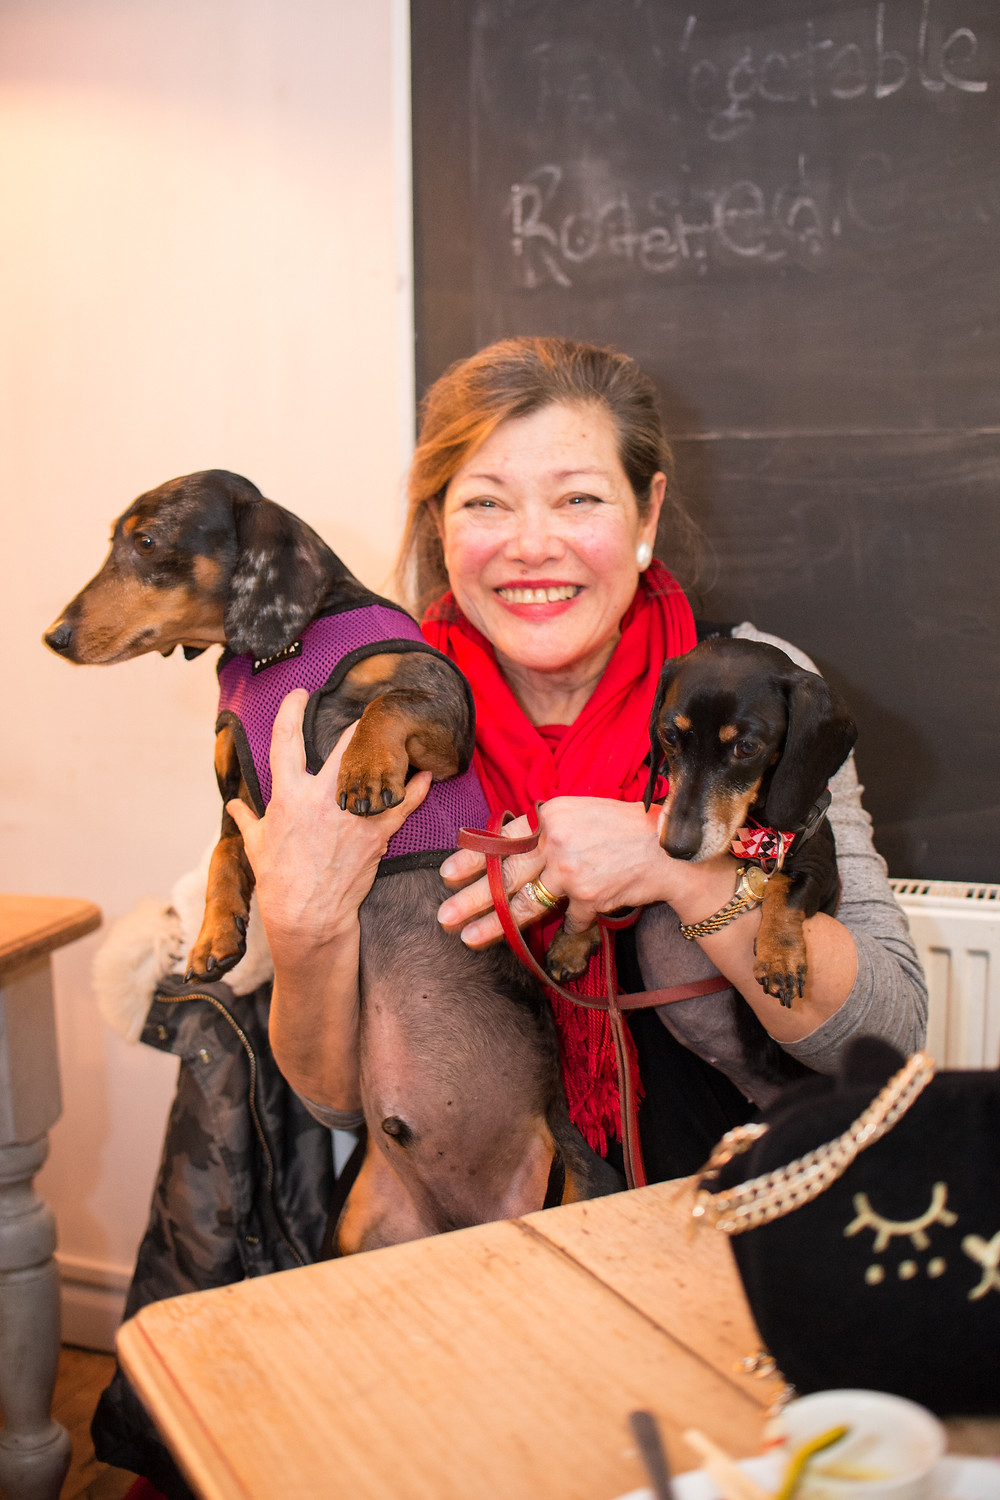 Lady in red scarf with two Daschunds at Rempah's party at Cafe Gratitude.